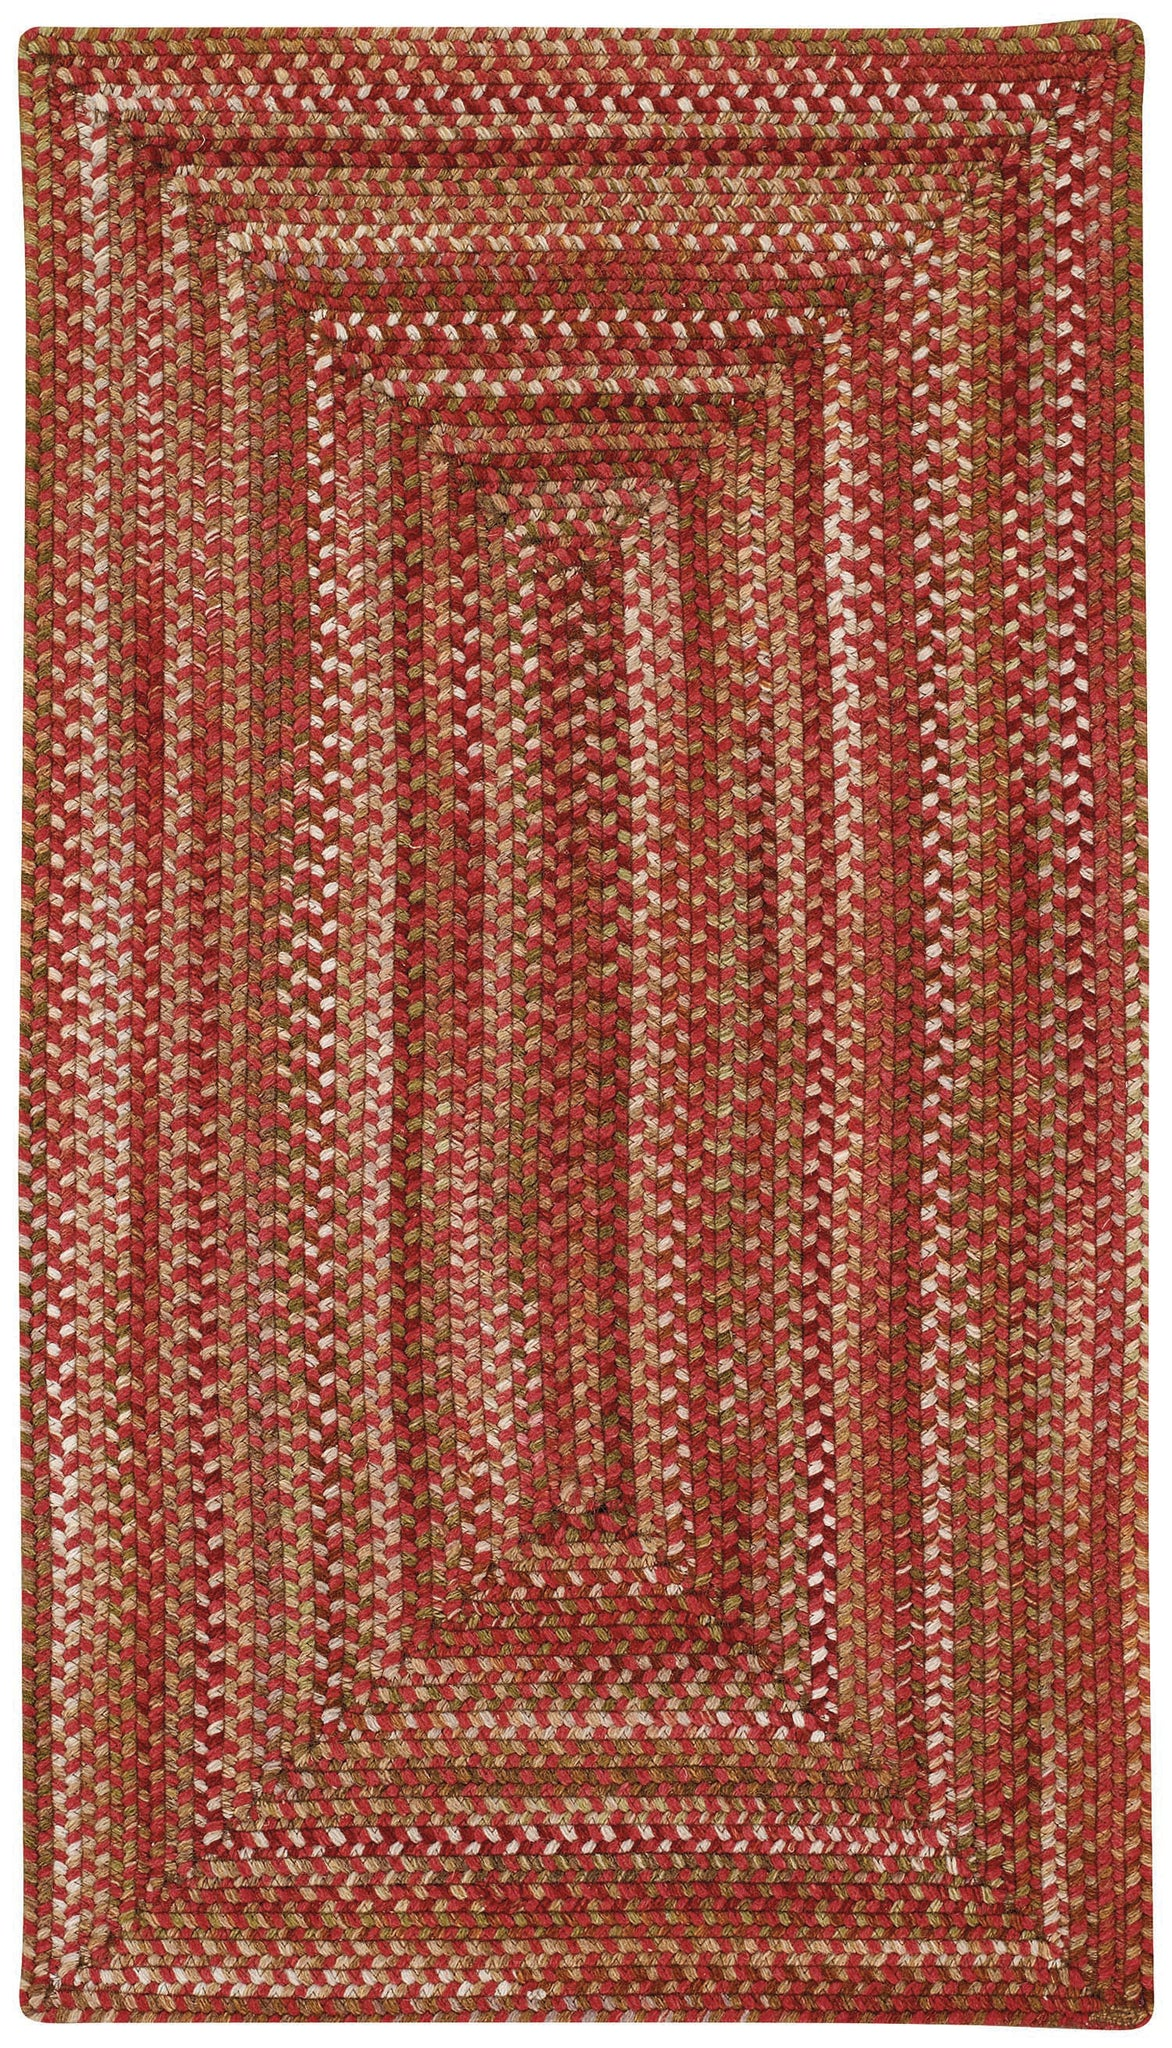 Capel Manchester 0048 Redwood 500 Area Rug main image